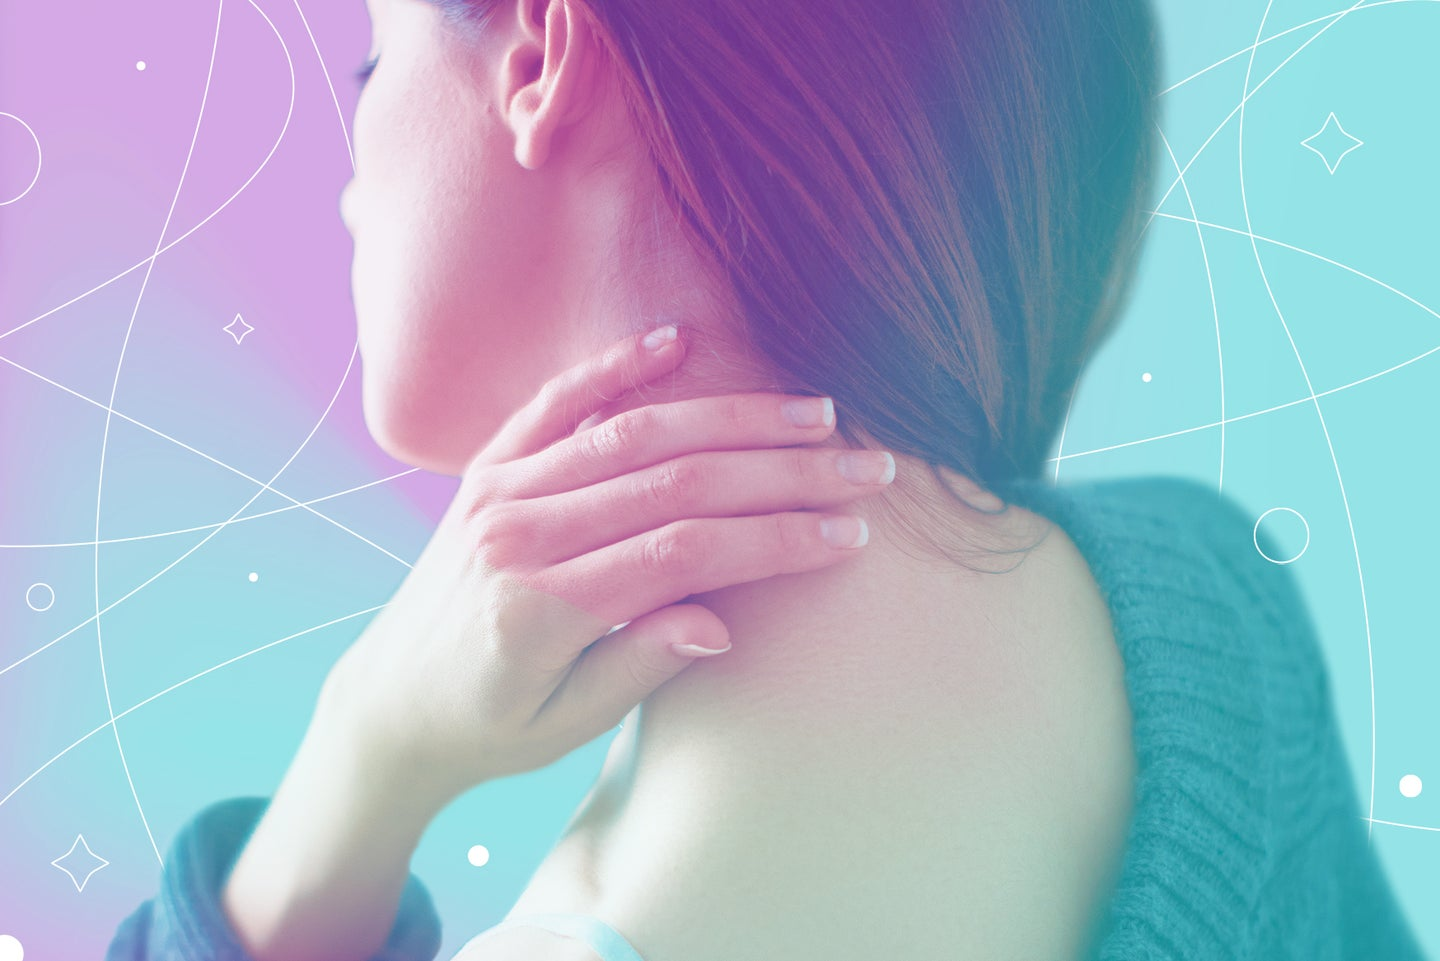 A woman rubs her neck with her fingers in front of a pink and blue background